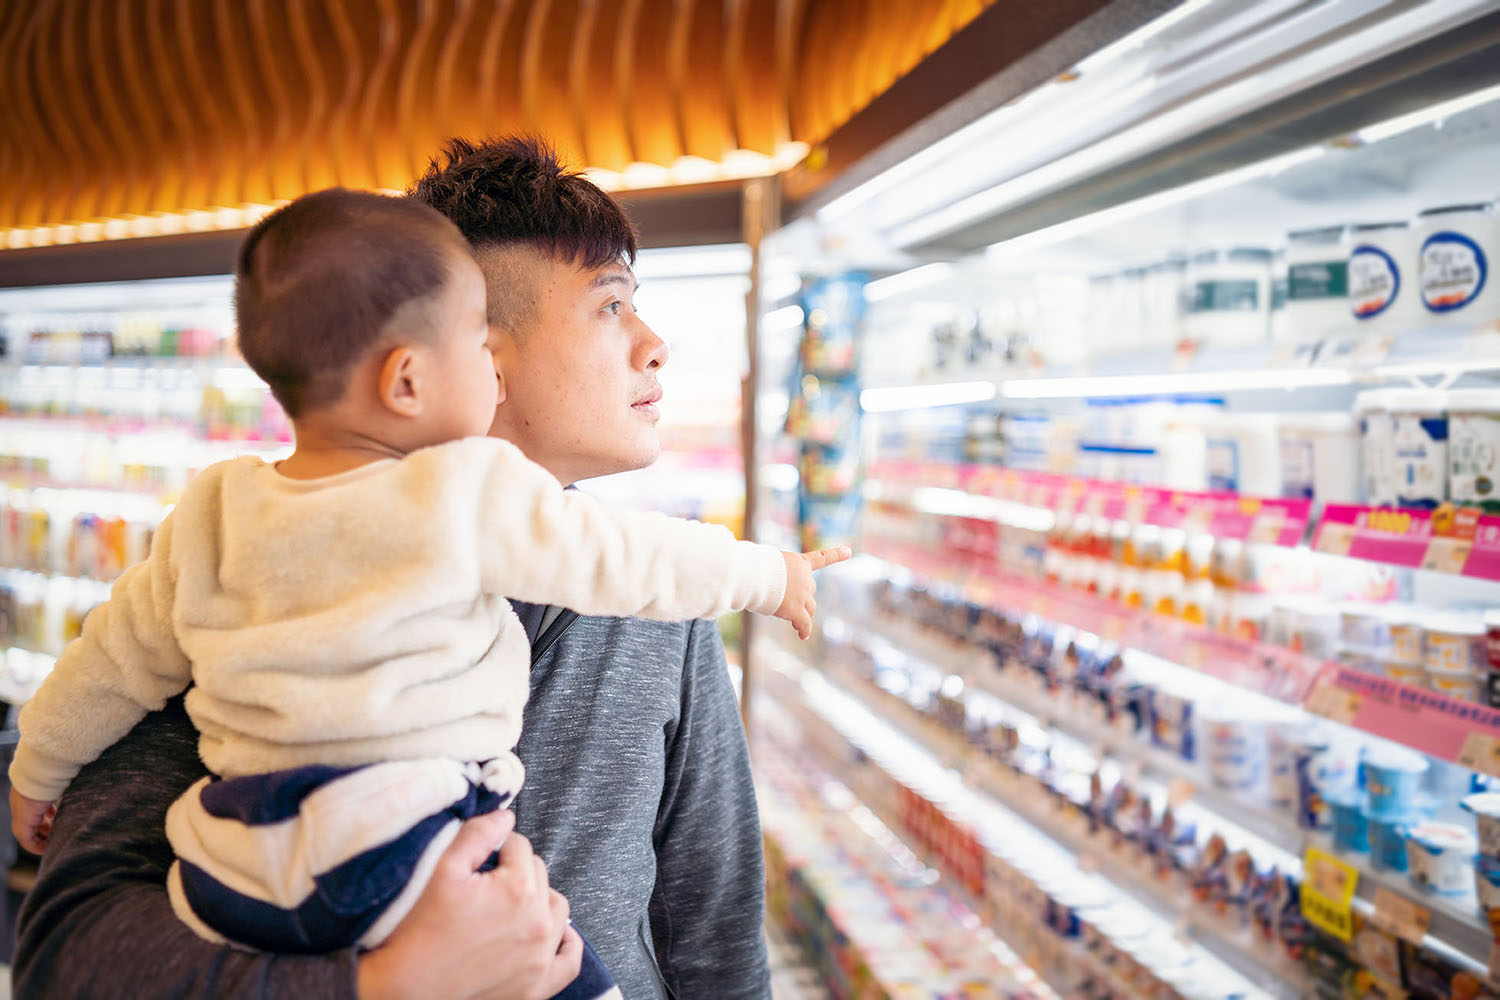 Man with child looking at groceries